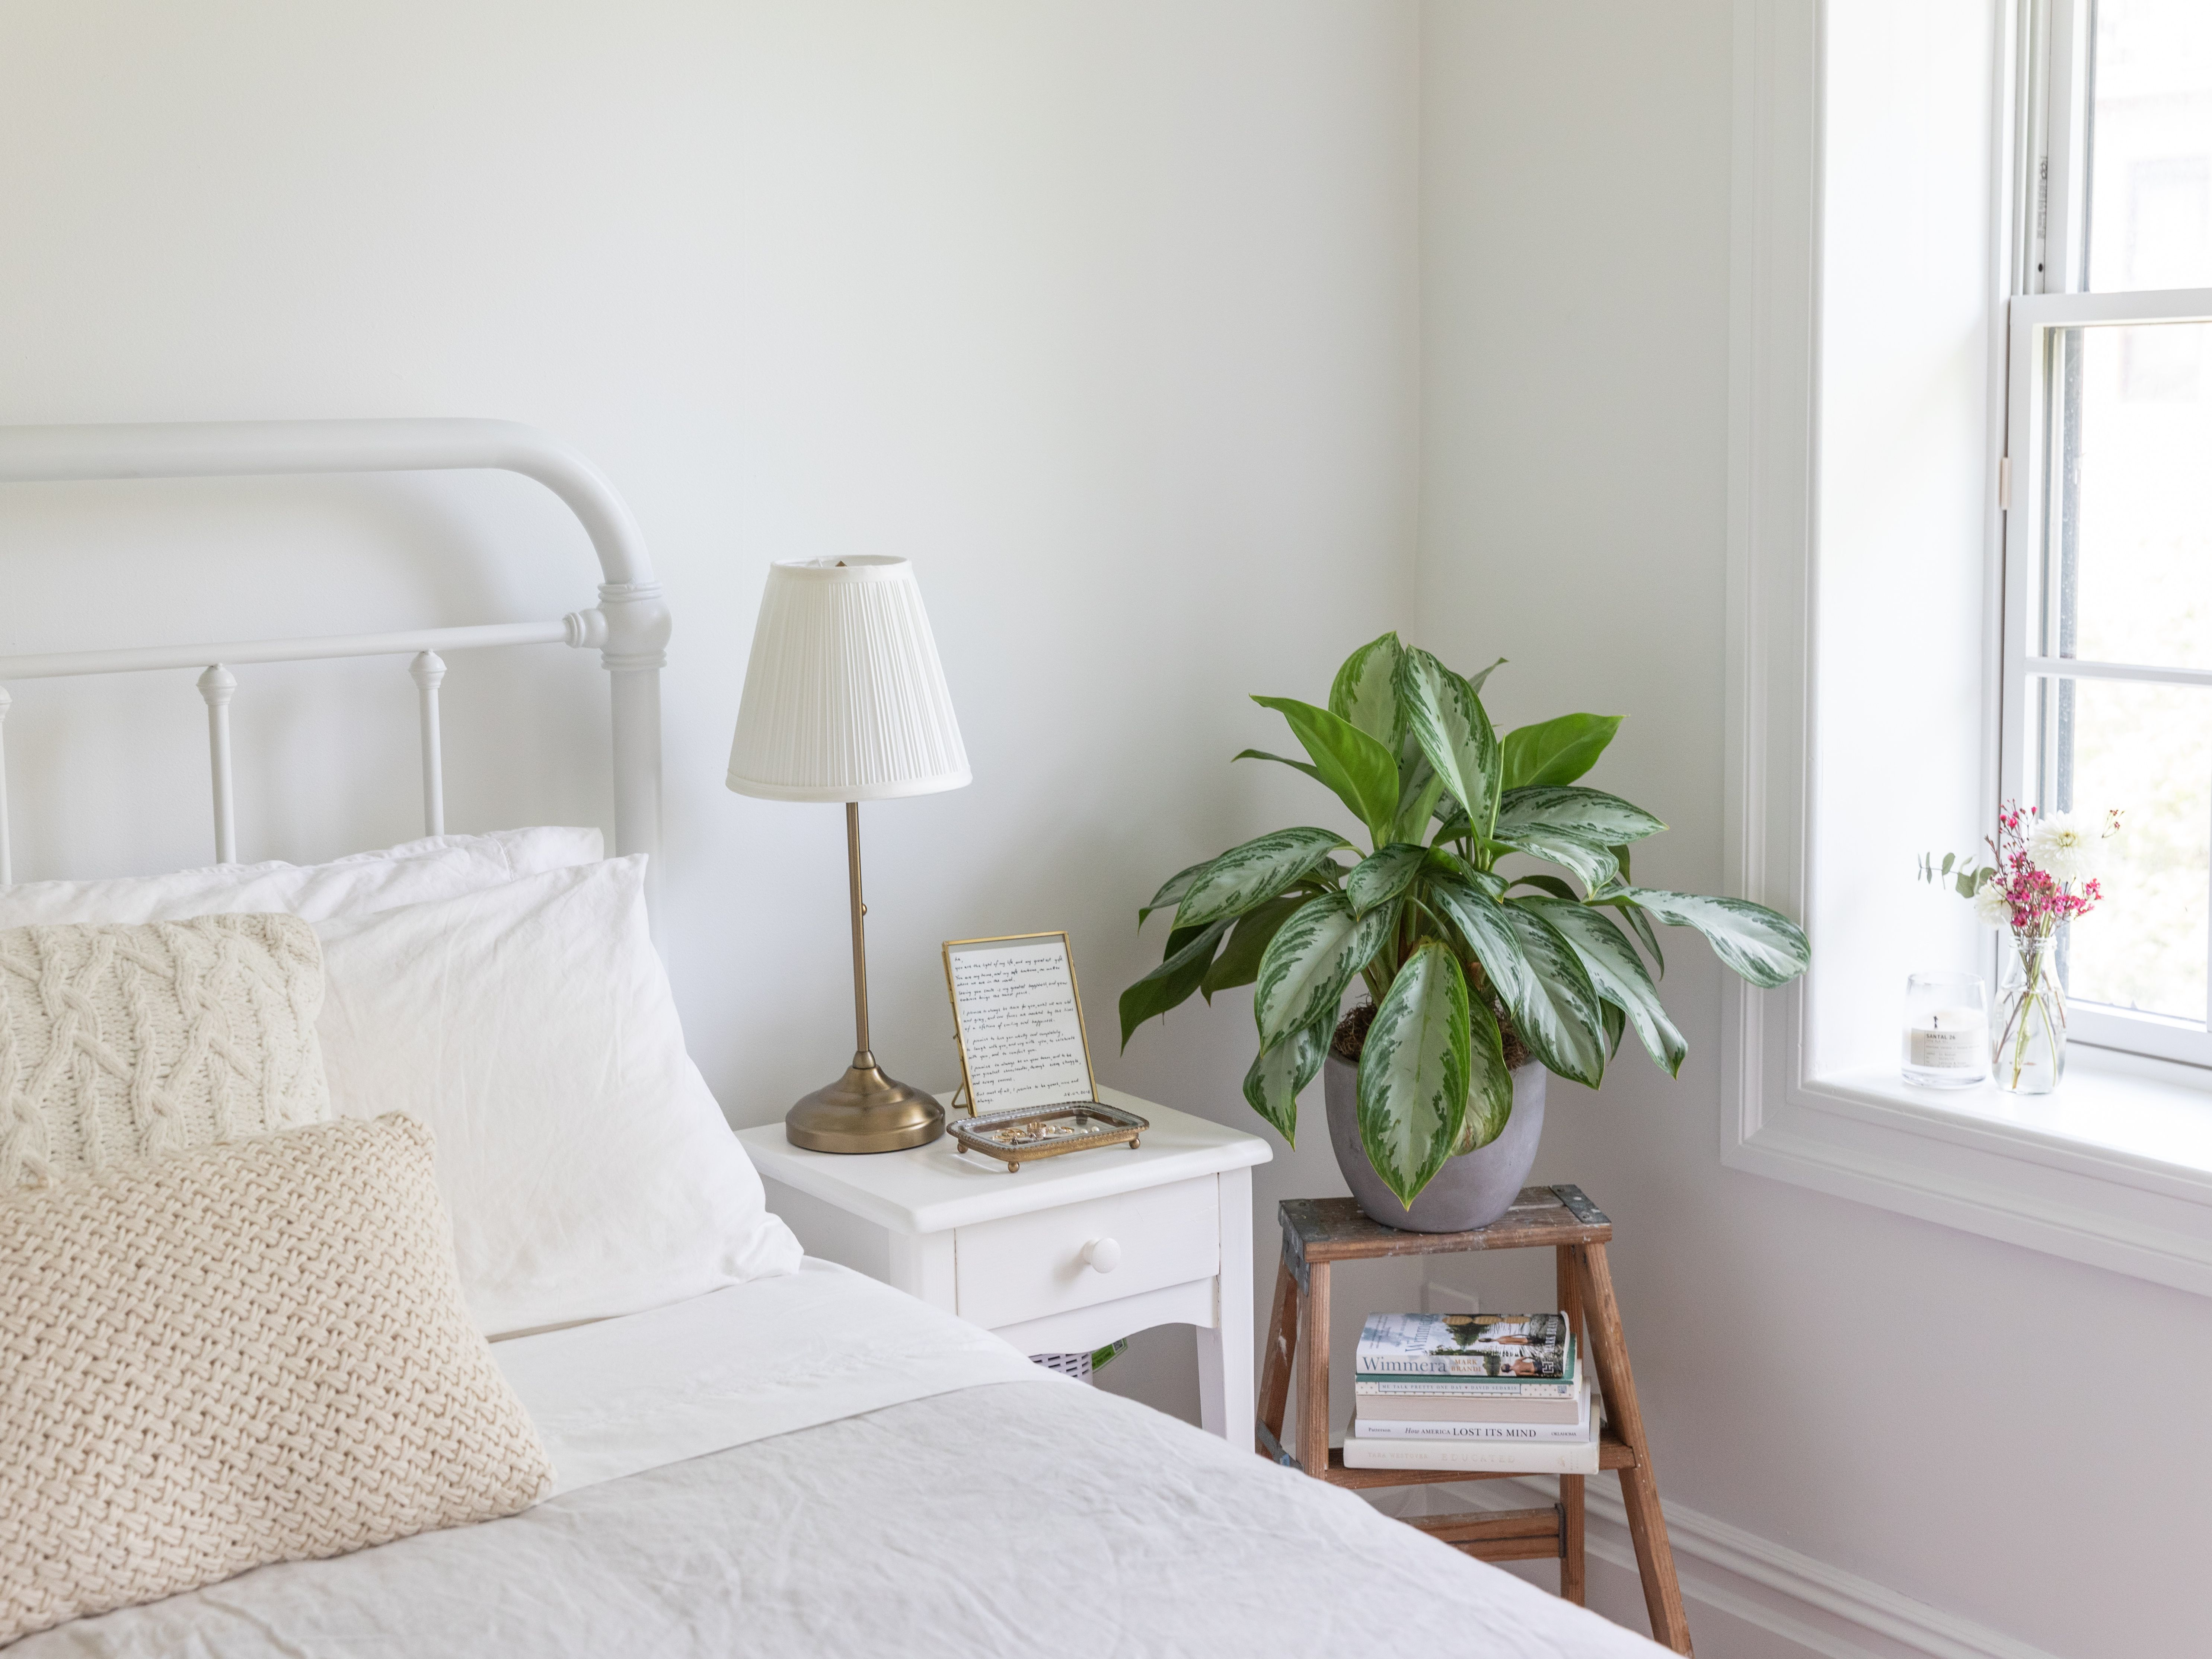 Feng Shui Use Of Plants In The Bedroom